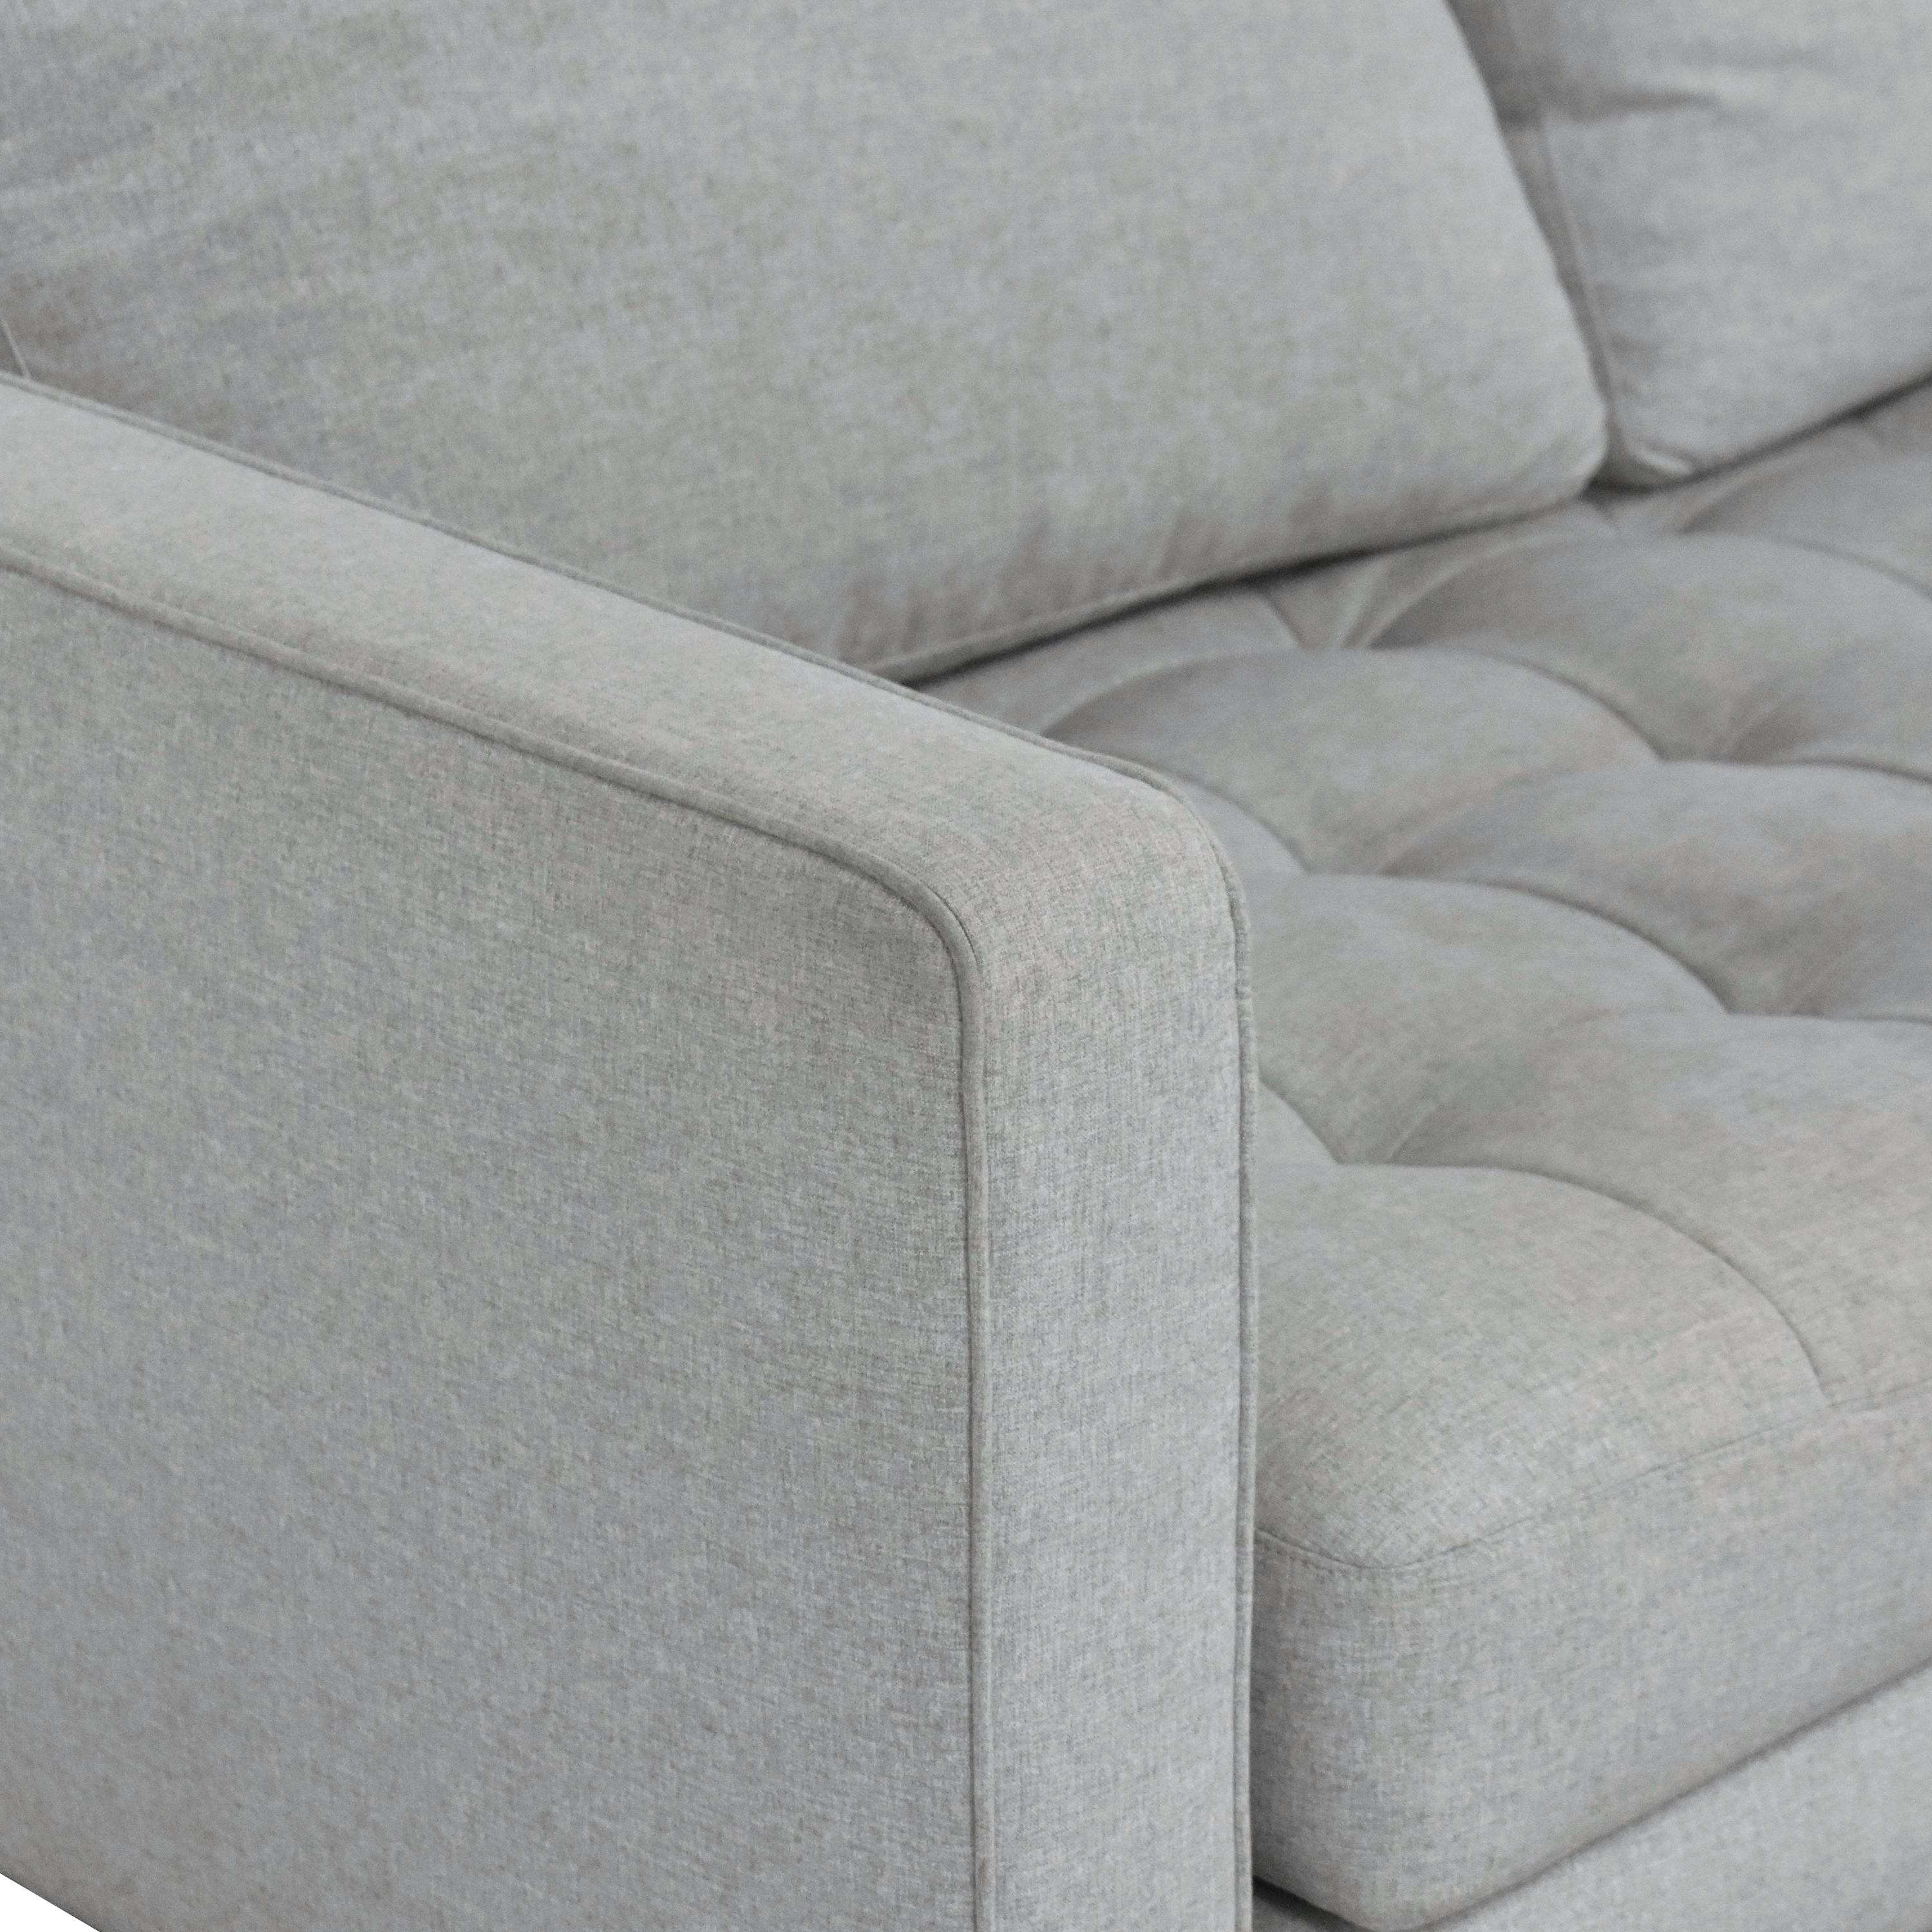 buy Rove Concepts Rove Concepts Luca Sectional Sofa with Chaise online